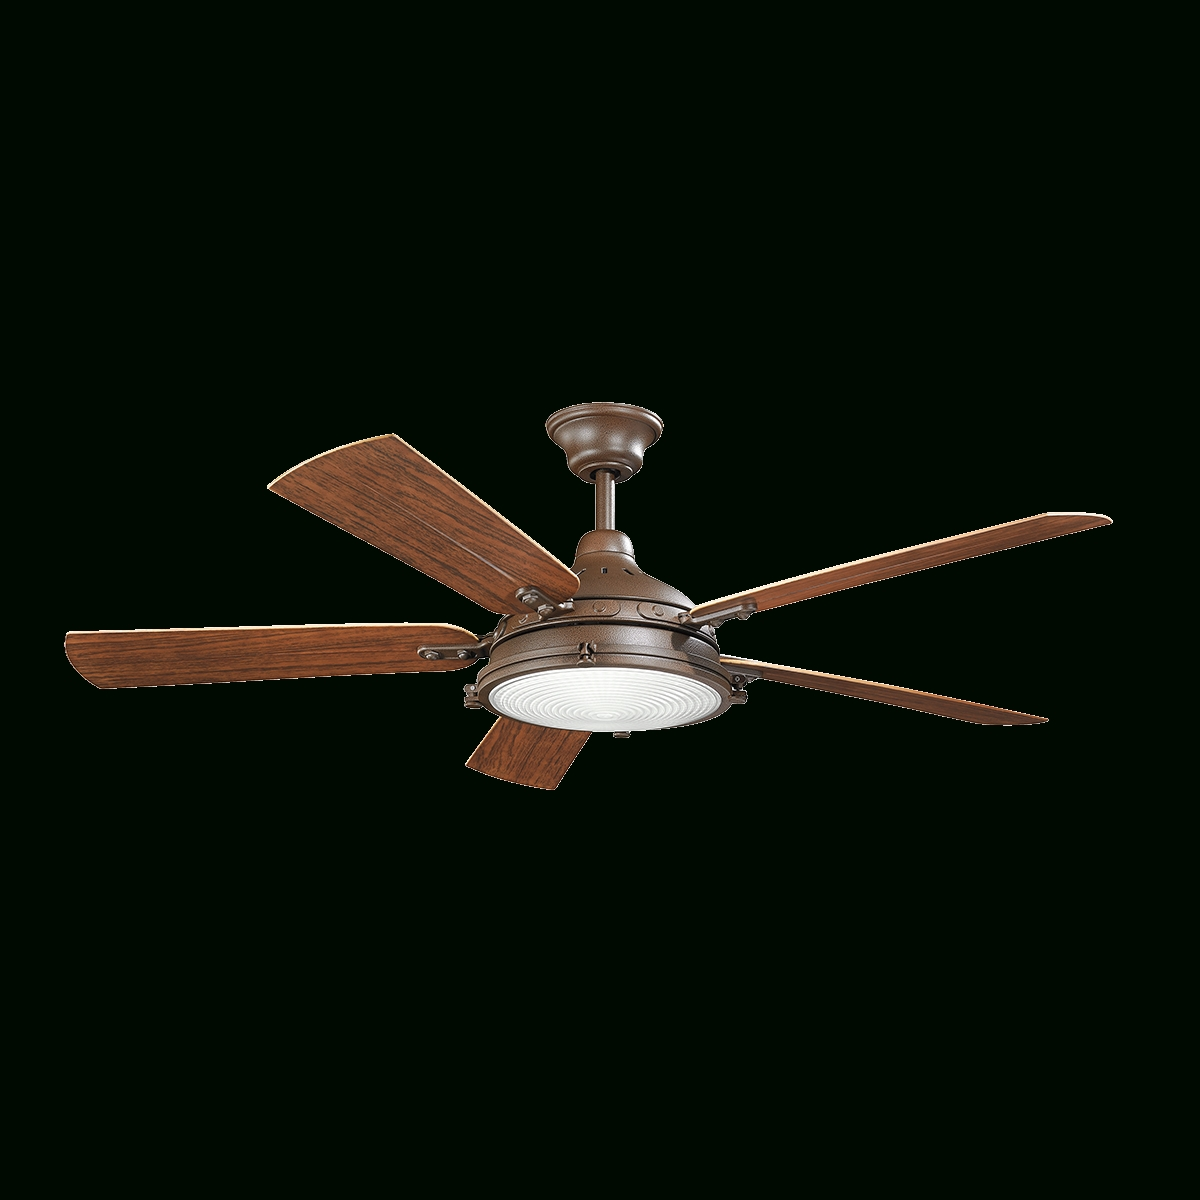 Remodeling Ideas Intended For 2018 72 Predator Bronze Outdoor Ceiling Fans With Light Kit (View 13 of 20)